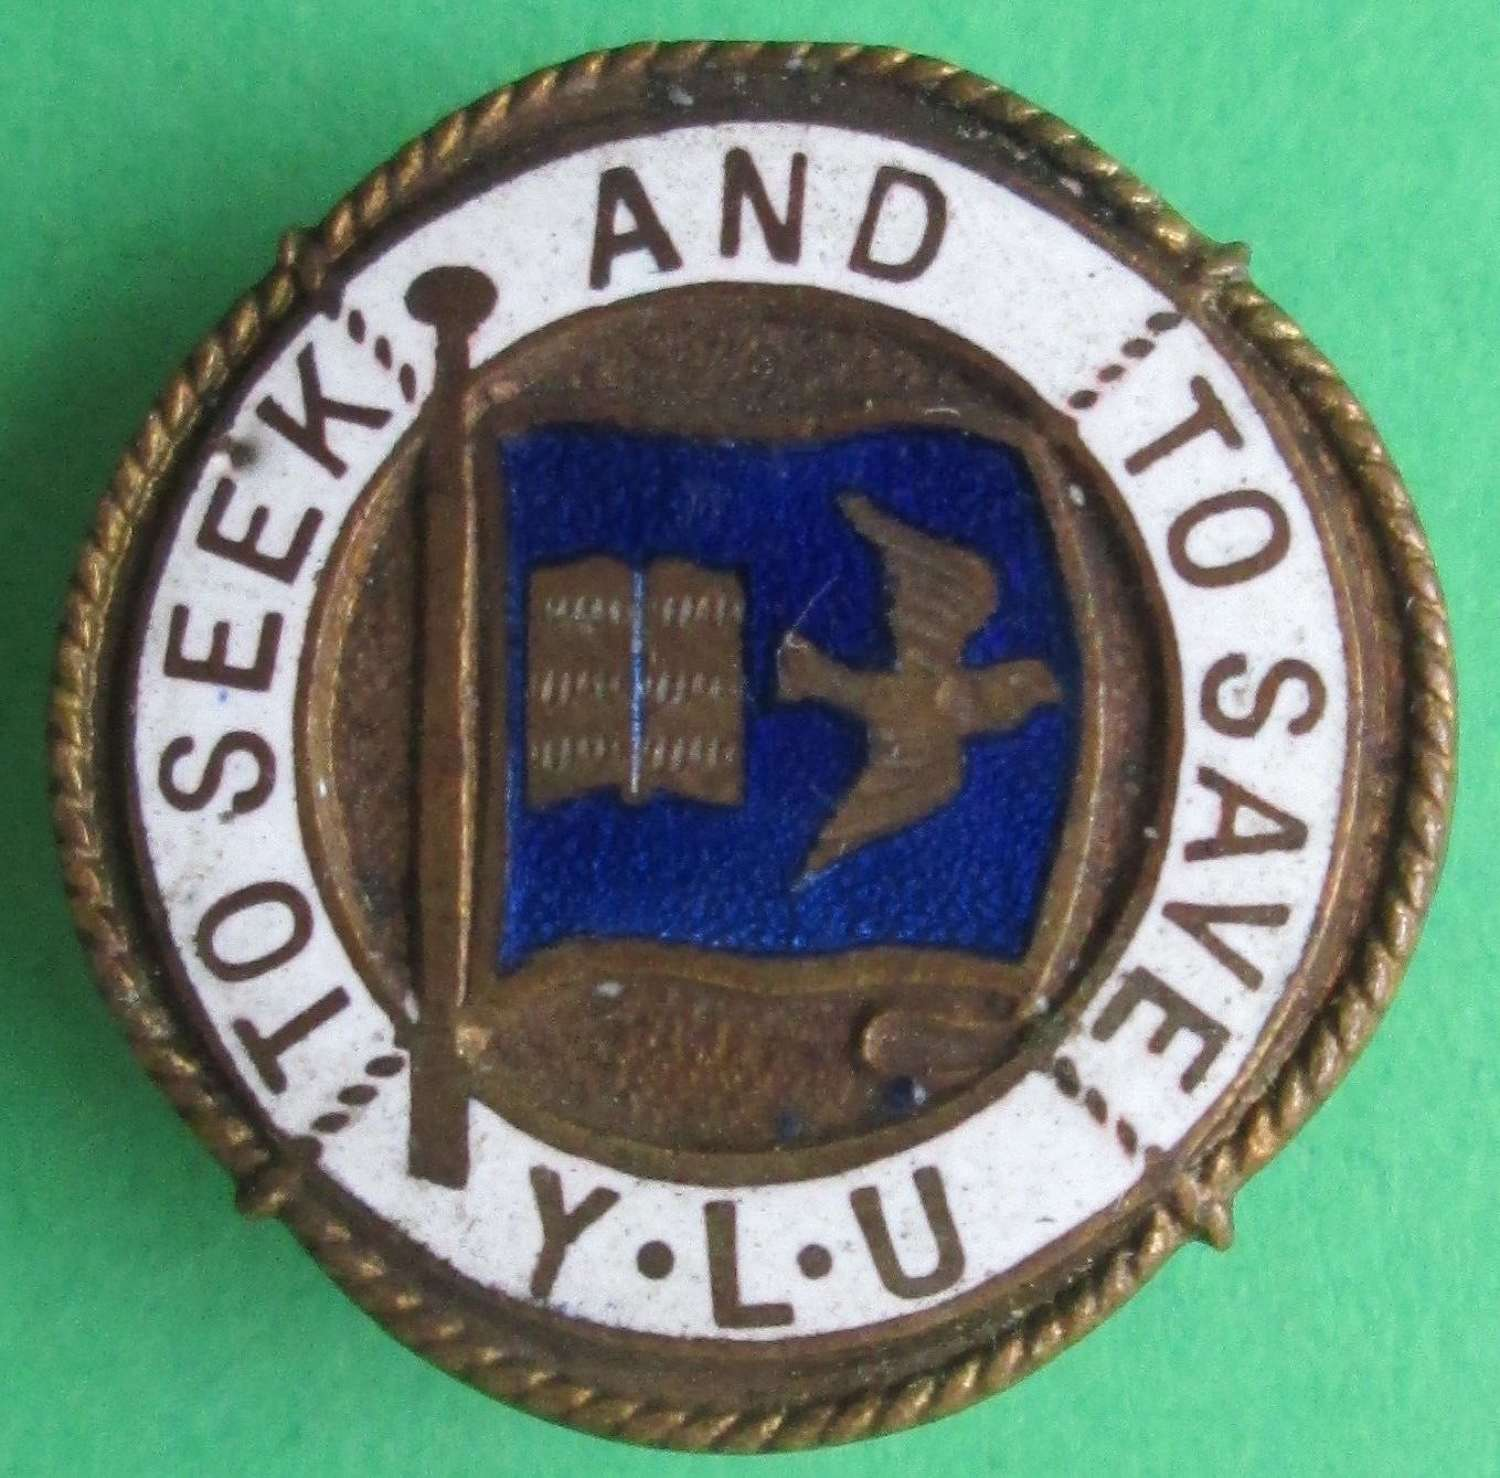 AN ENAMEL YOUNG LEADERS UNION LAPEL BADGE